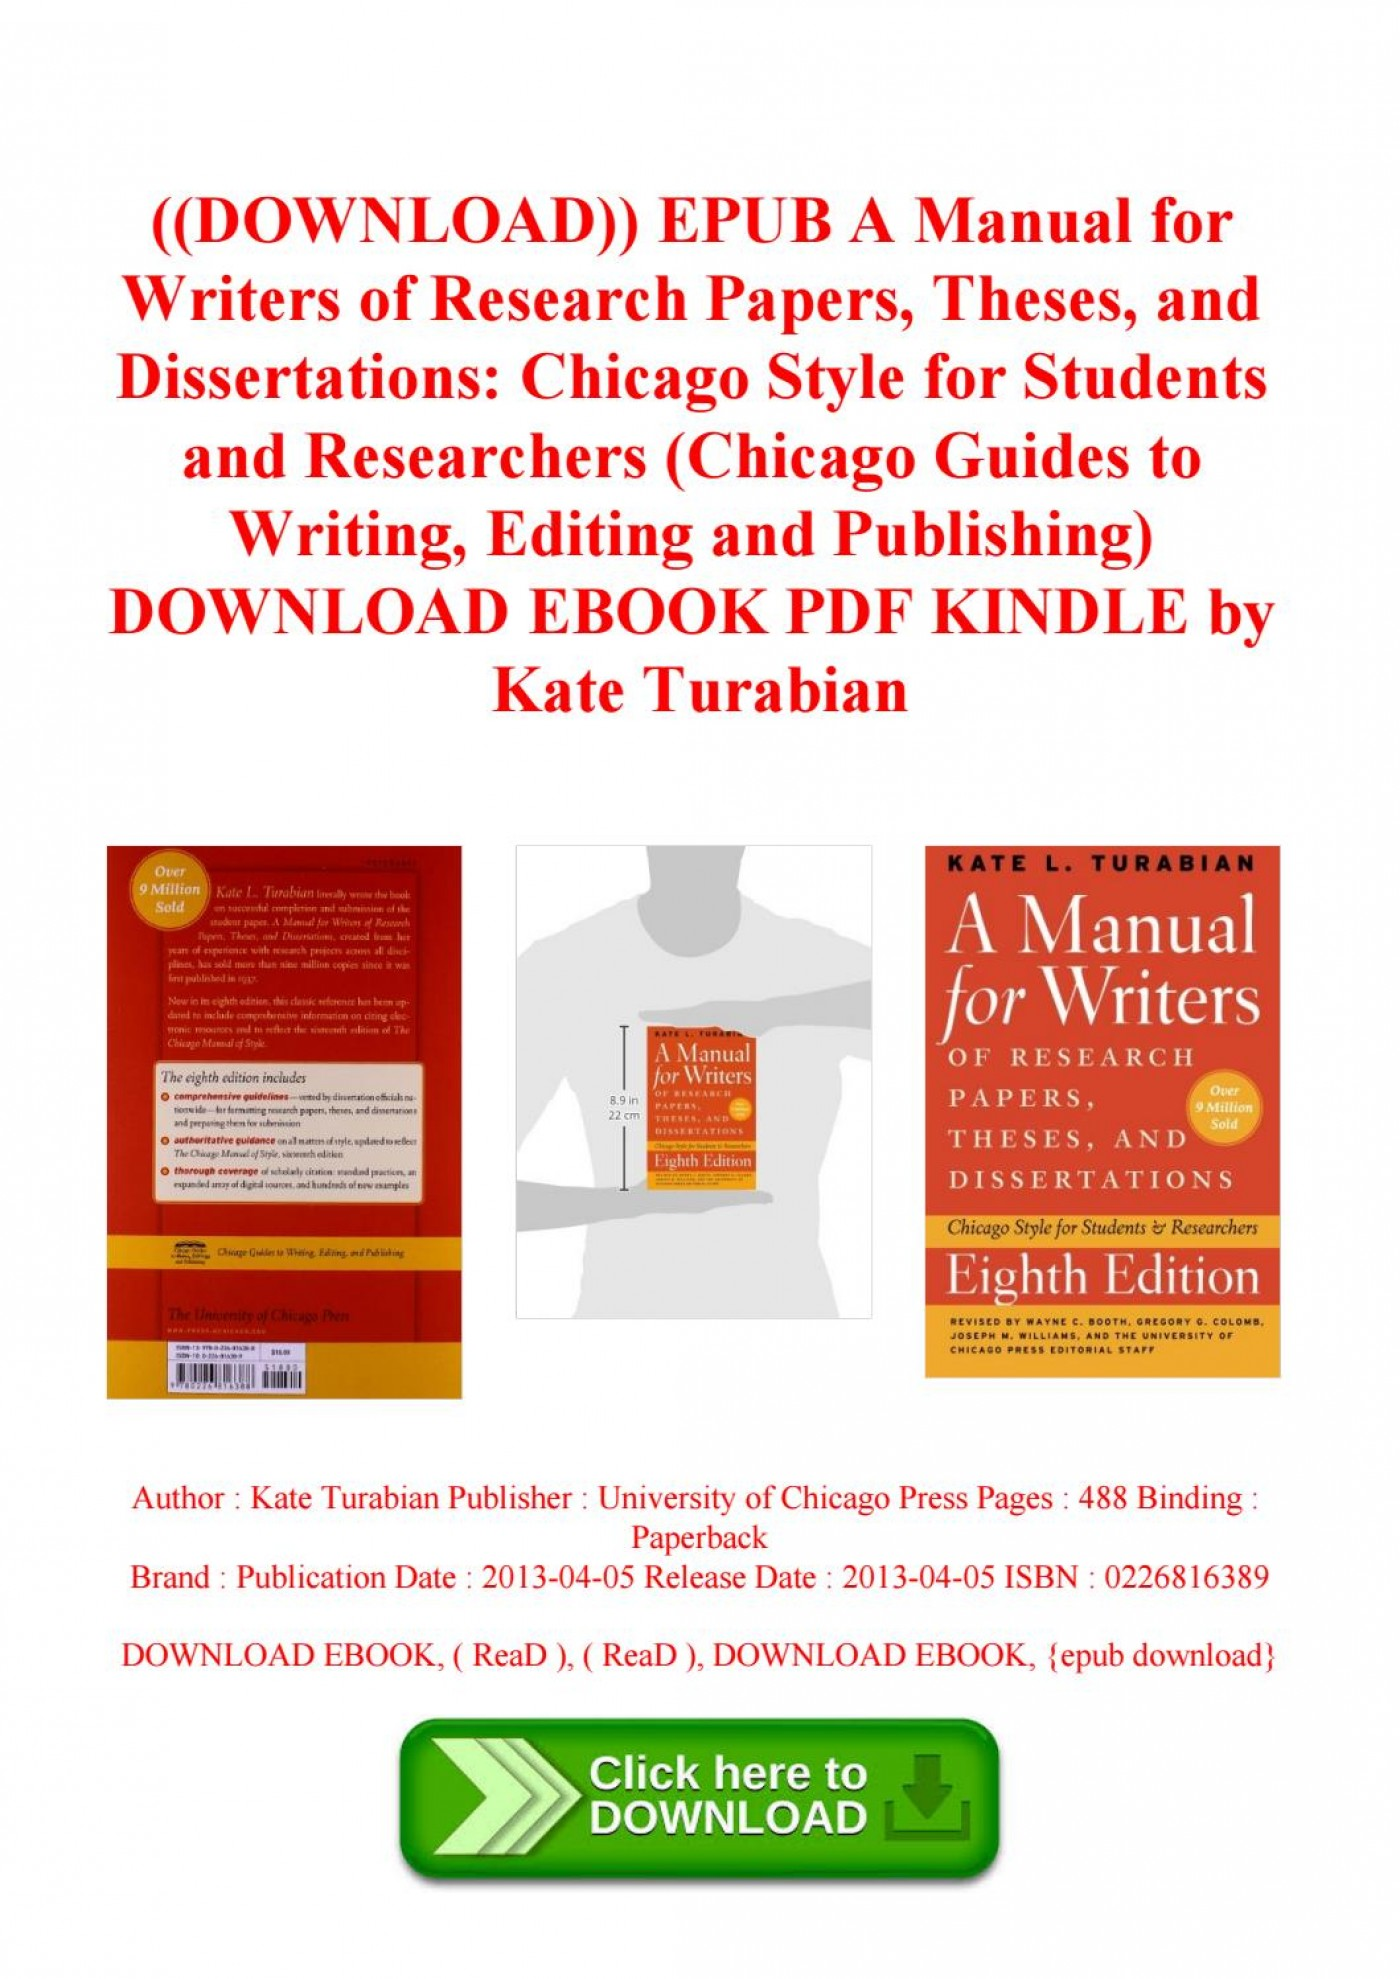 006 Page 1 Research Paper Manual For Writers Of Papers Theses And Sensational A Dissertations 8th Edition Pdf Eighth 1400